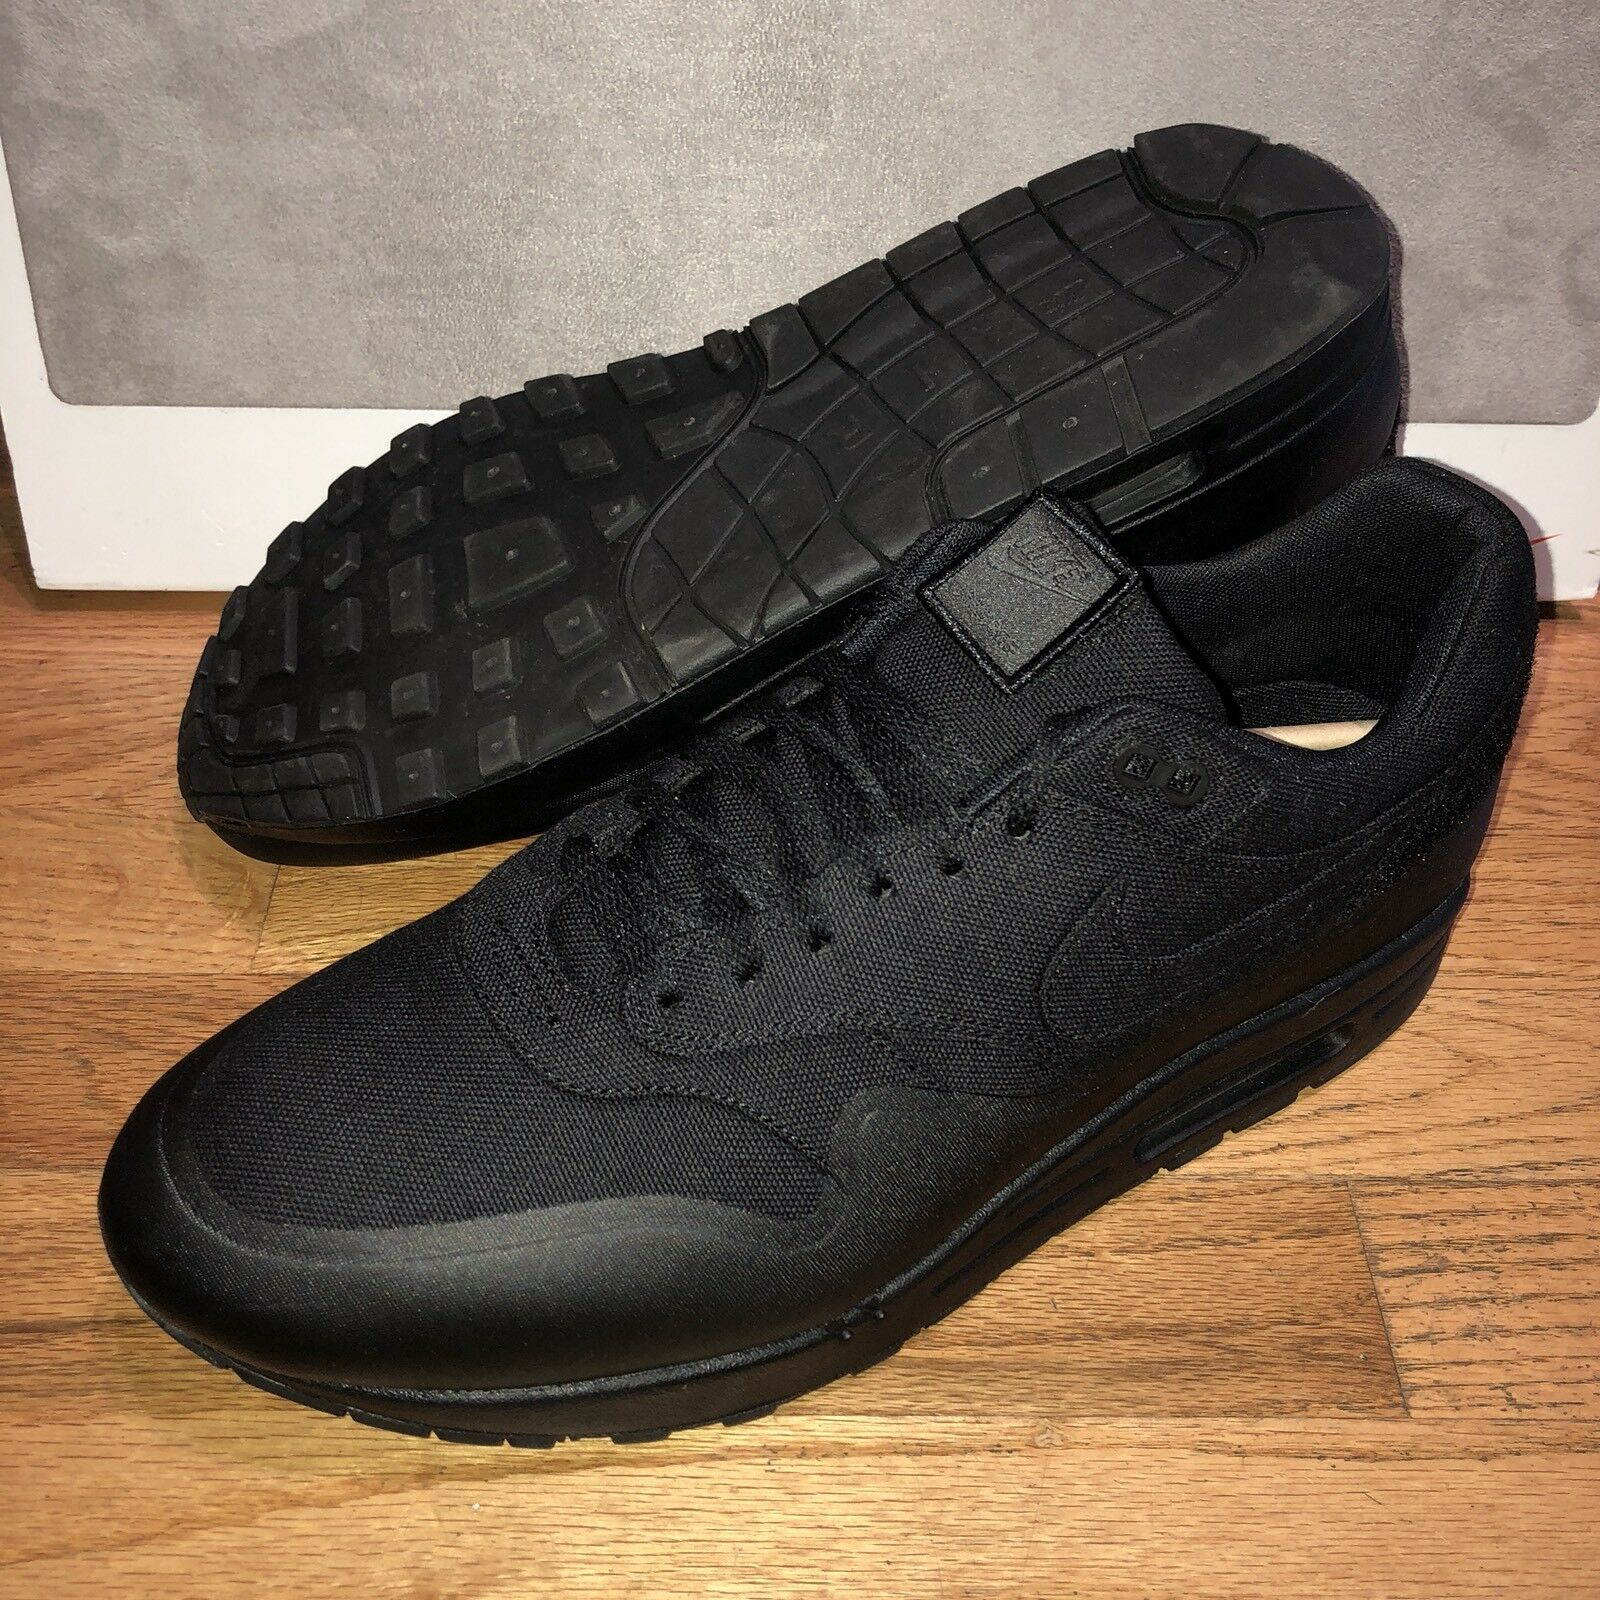 Nike Air Max 1 V SP Patch All Black Mens Size 14 New DS USA American Flag